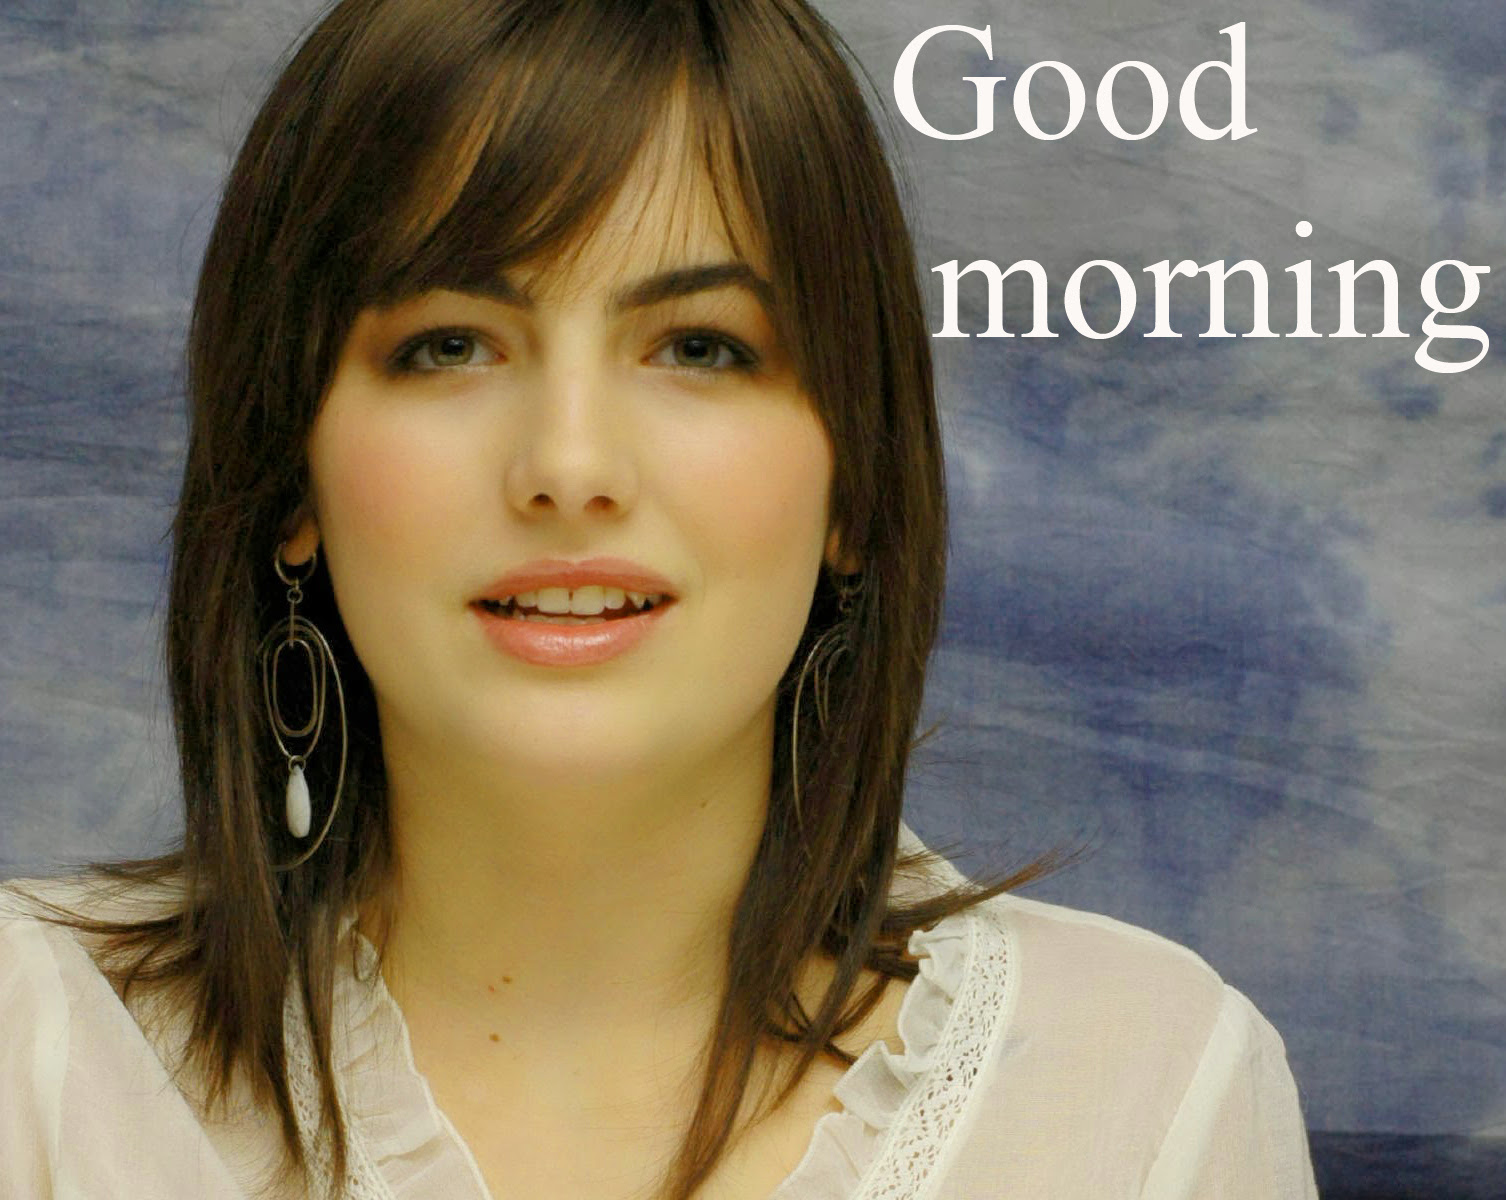 Hd Good Morning Picture For The Most Beautiful Girl In The World